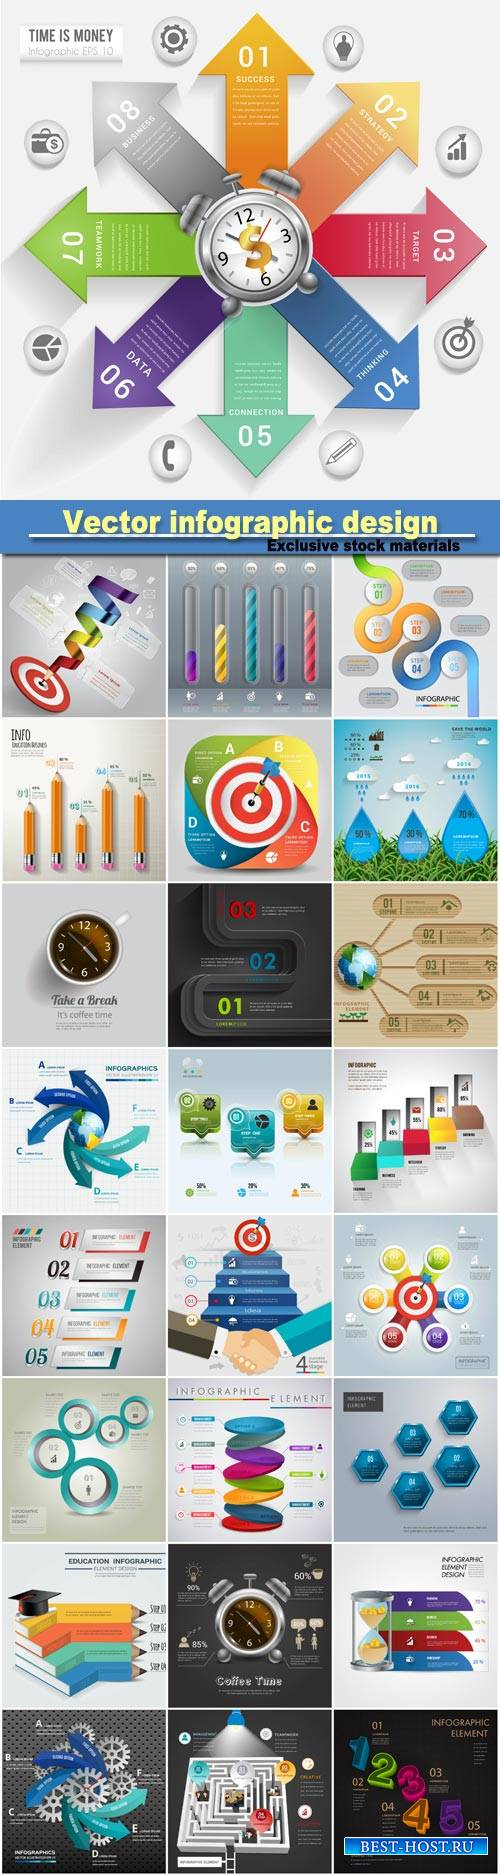 Vector infographic design and elelment